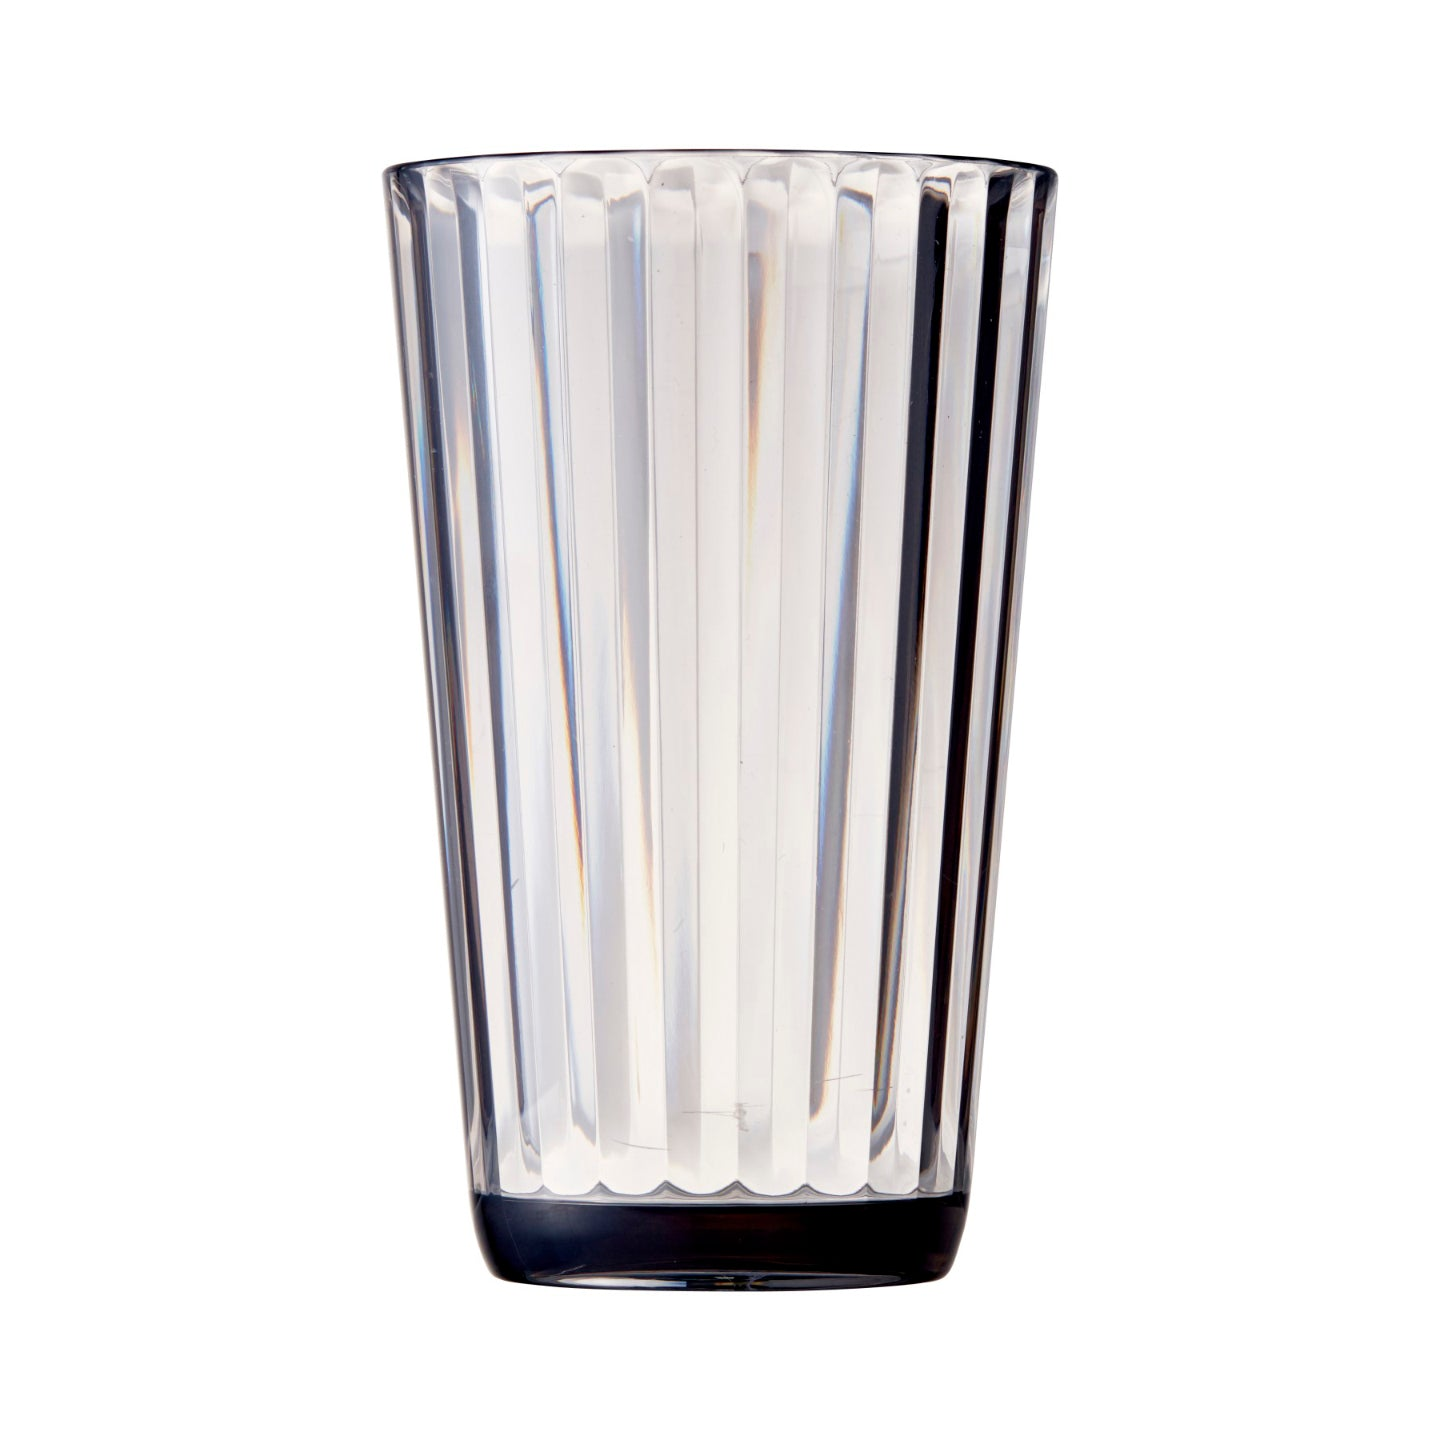 500ml Black Hi Ball Tumbler